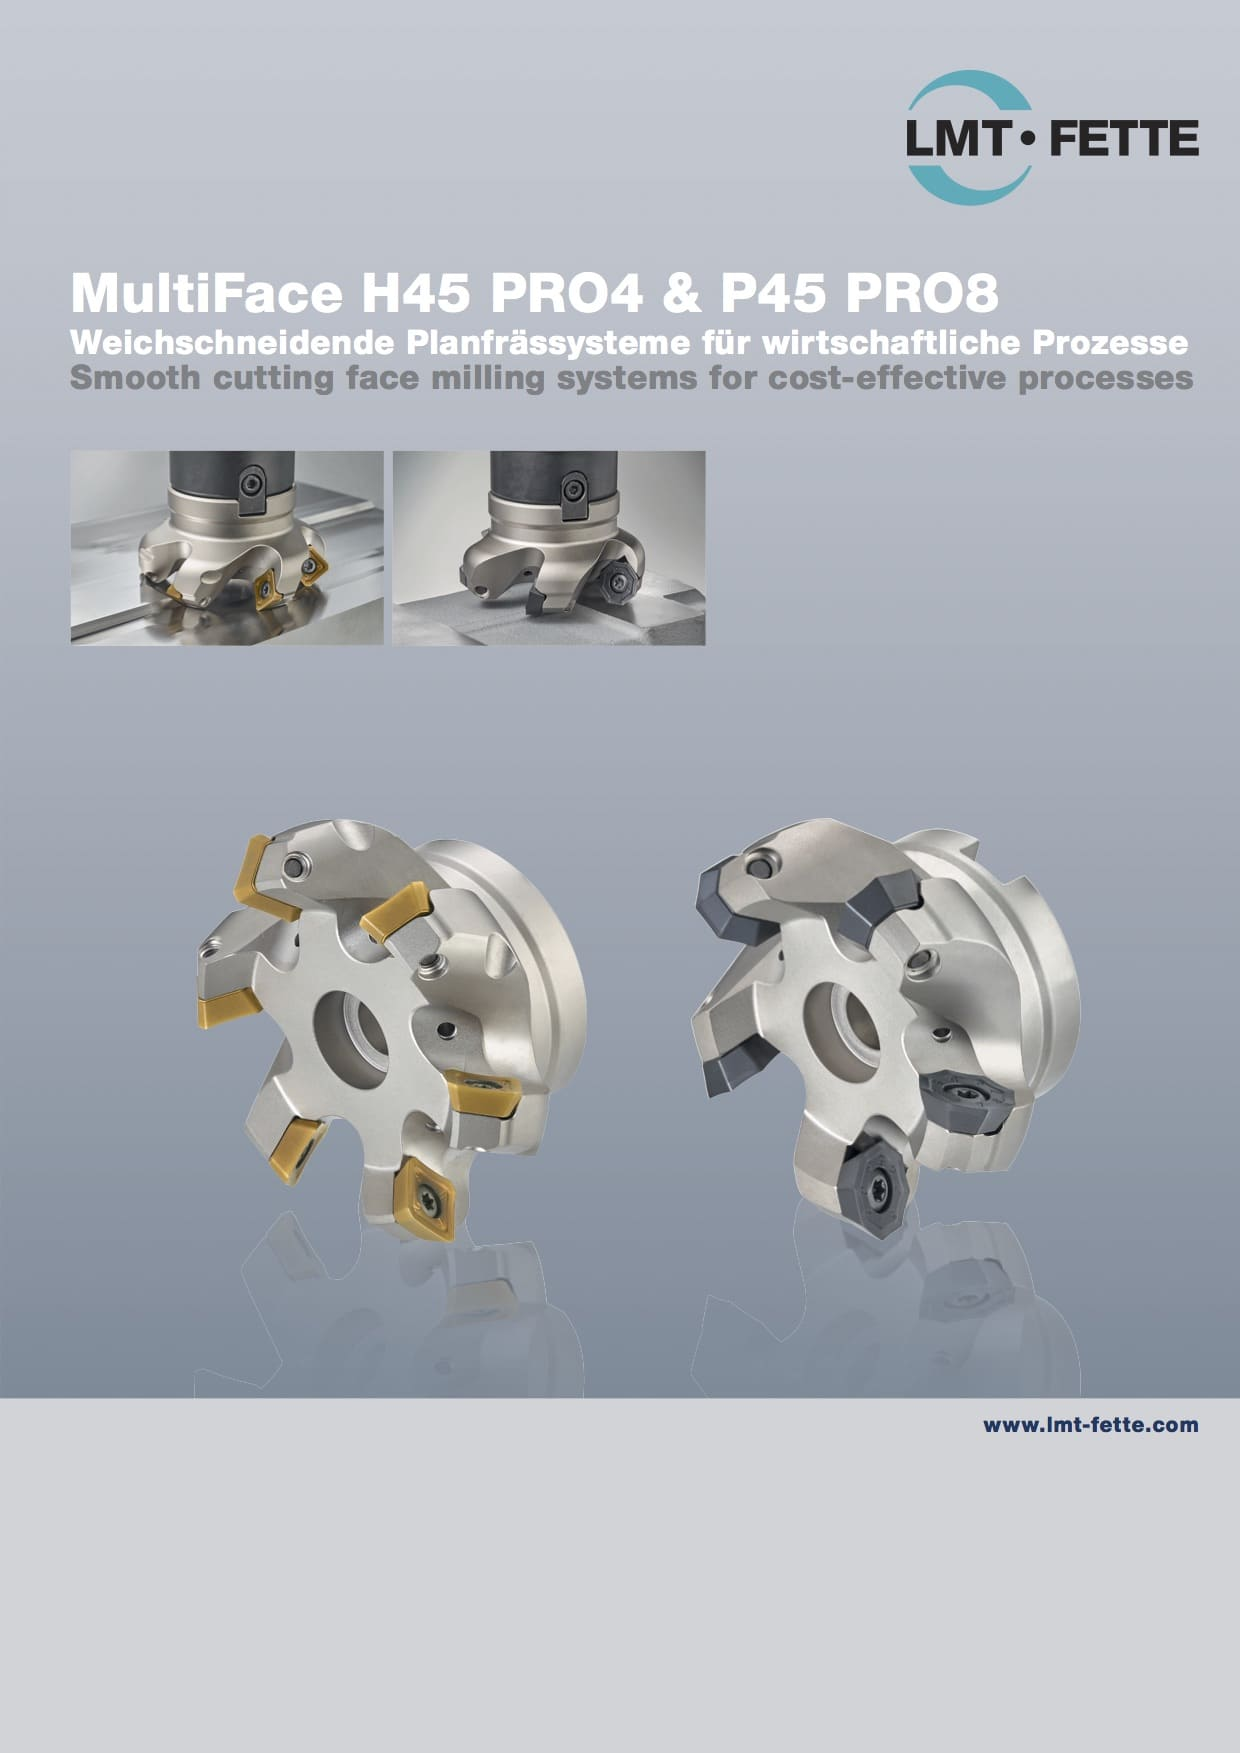 Face milling systems Multi Face H45 PRO4 & P45 PRO8